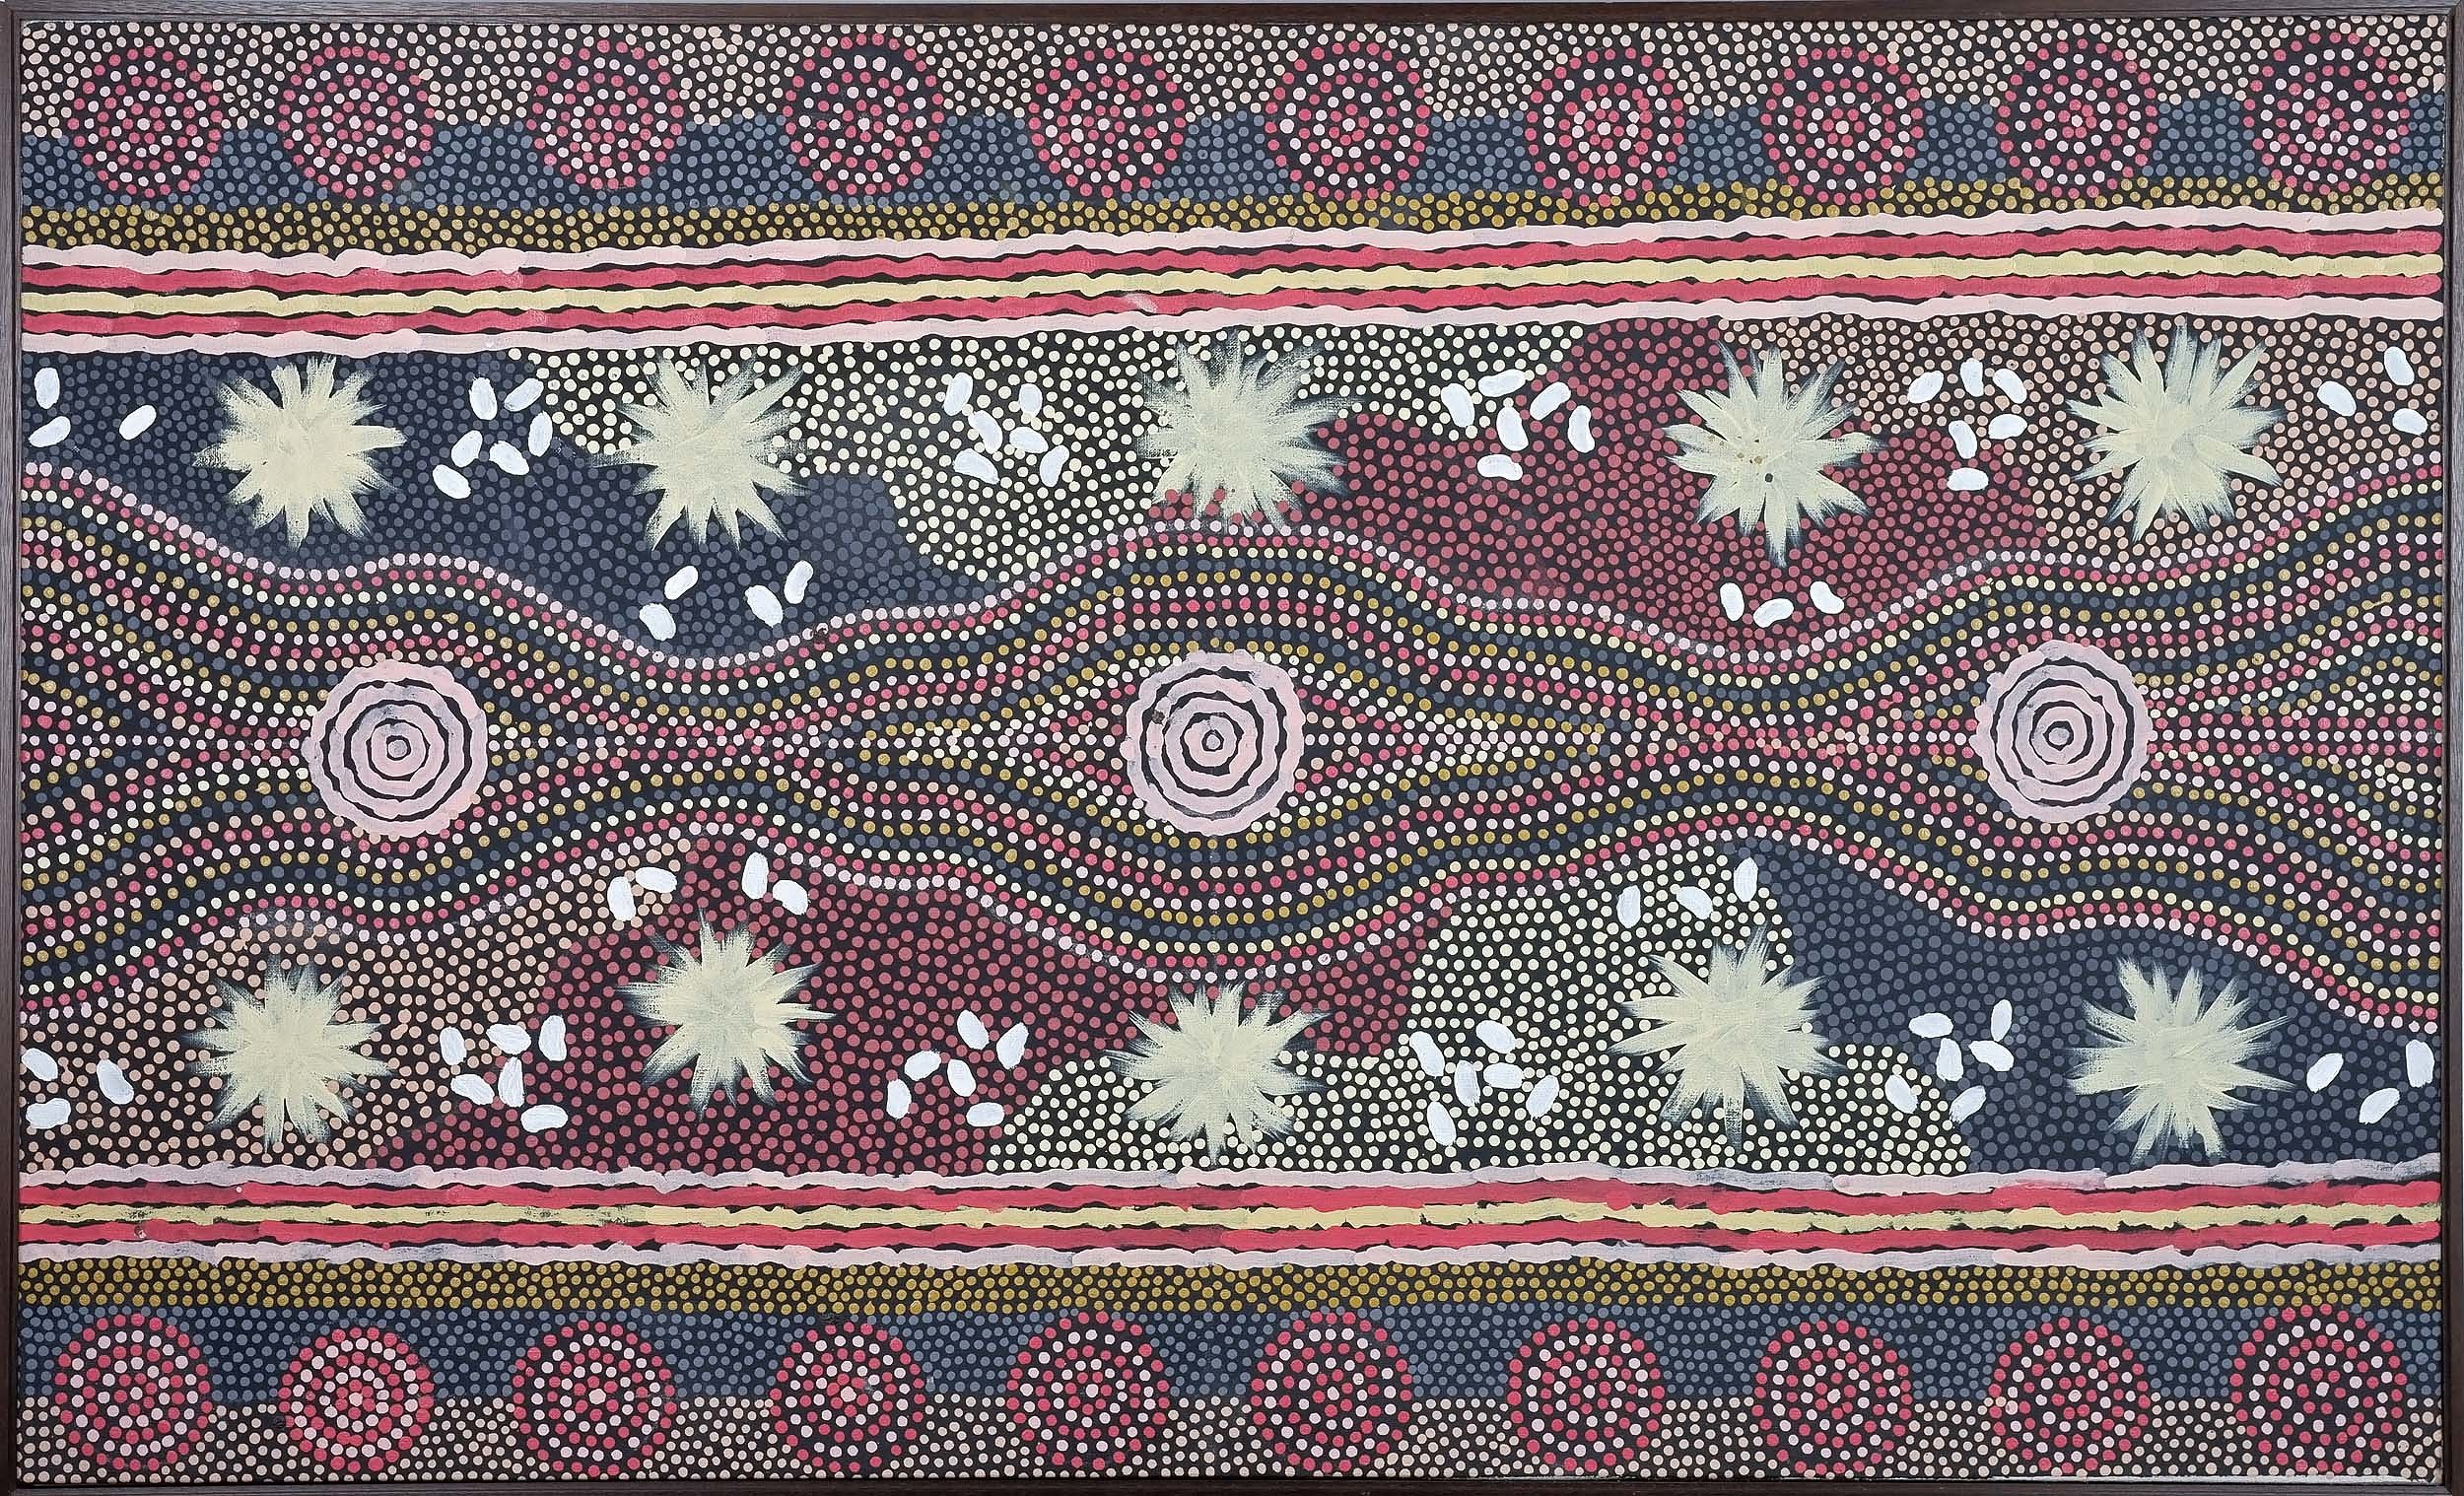 'Clifford Possum Tjapaltjarri (c1932-2002) Grandfathers Story - Bush Foods South of Napperby, Synthetic Polymer Paint on Linen'